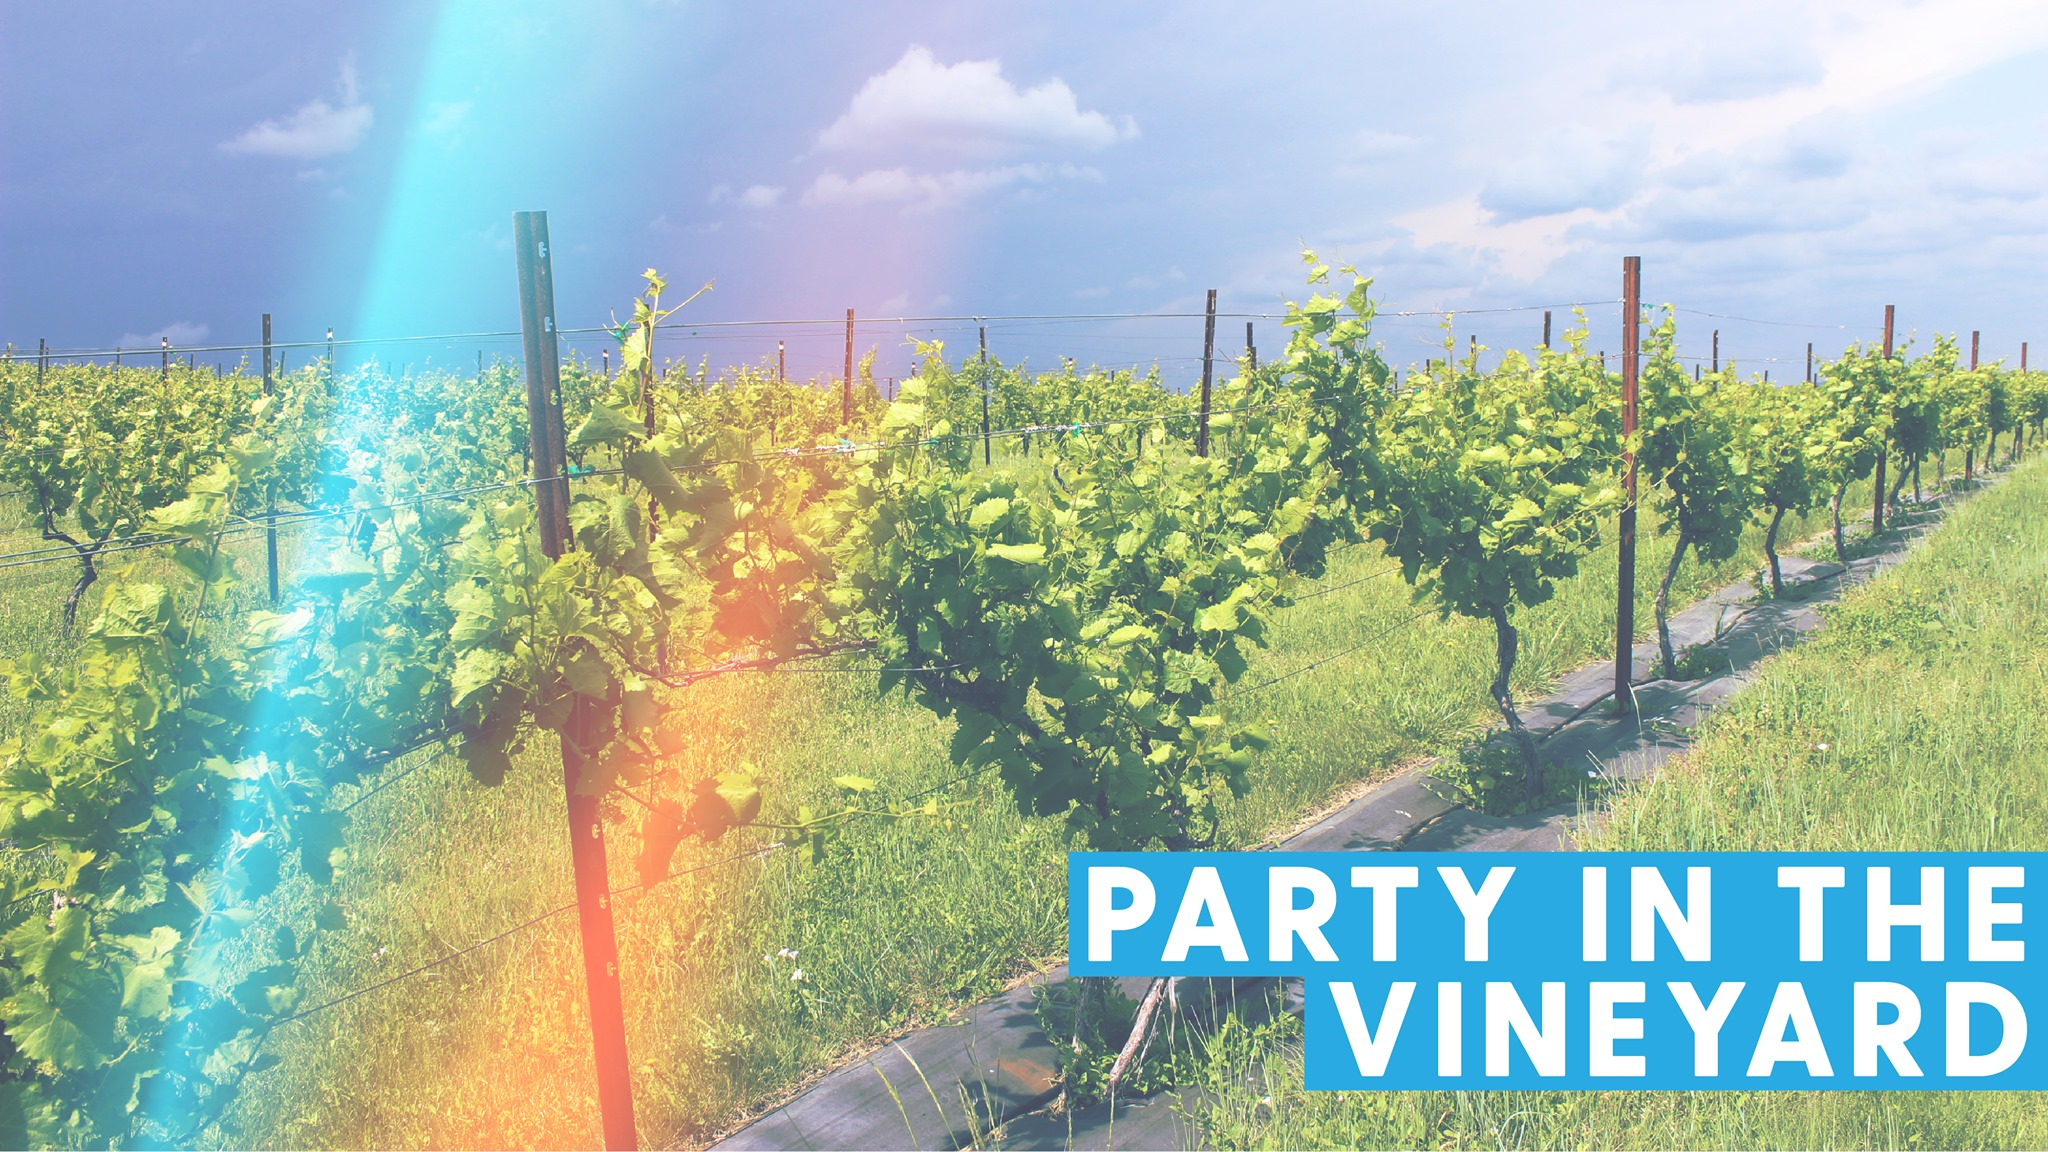 Party in the Vineyard, Sept 4, 2019